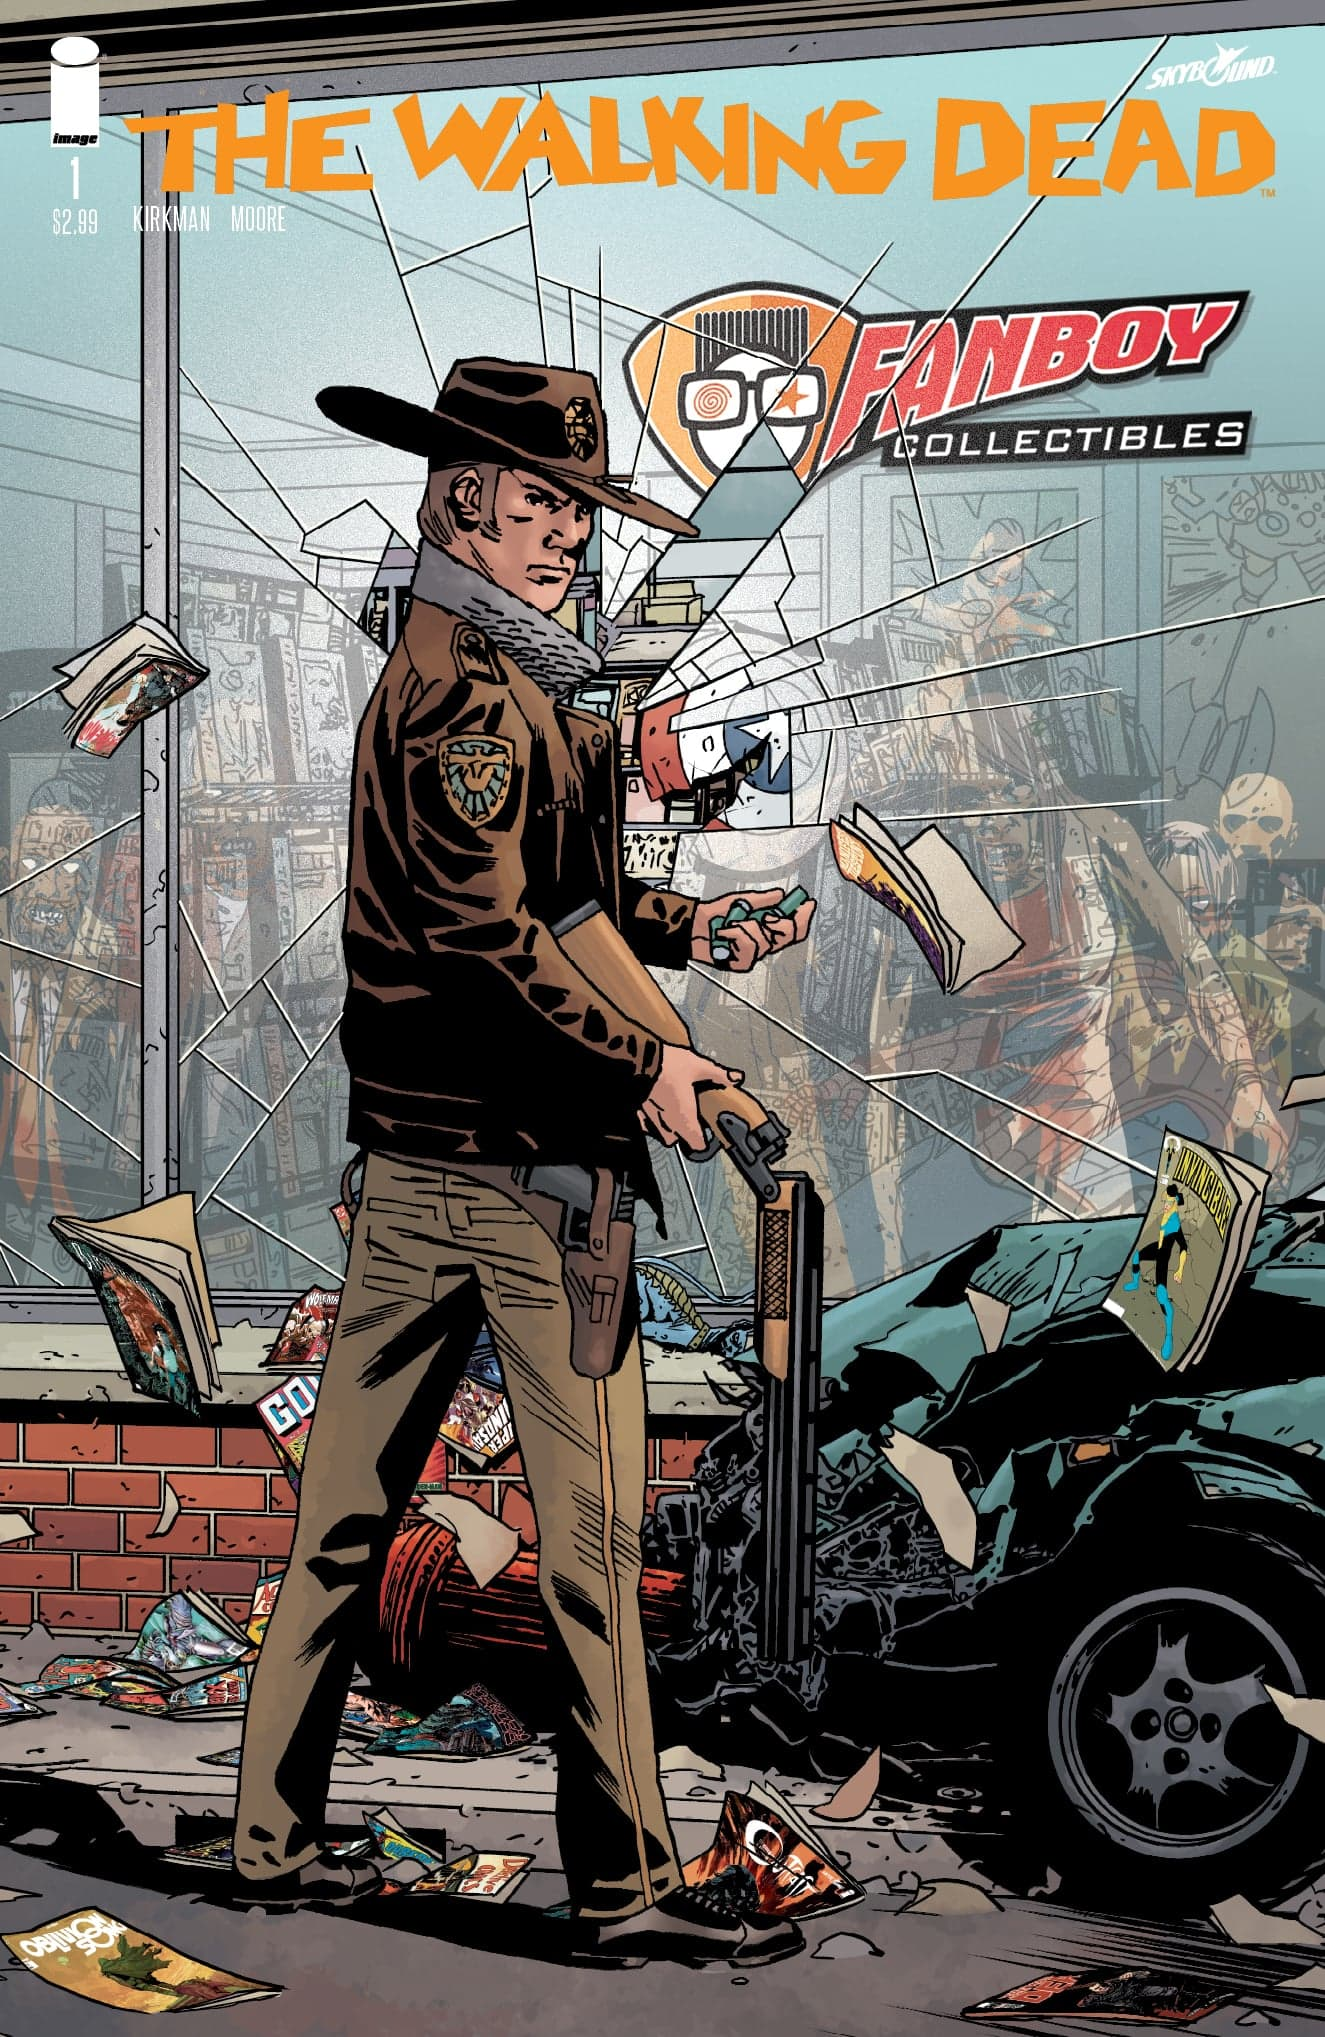 Walking Dead #1 15th Anniversary Retailer Variant Cover